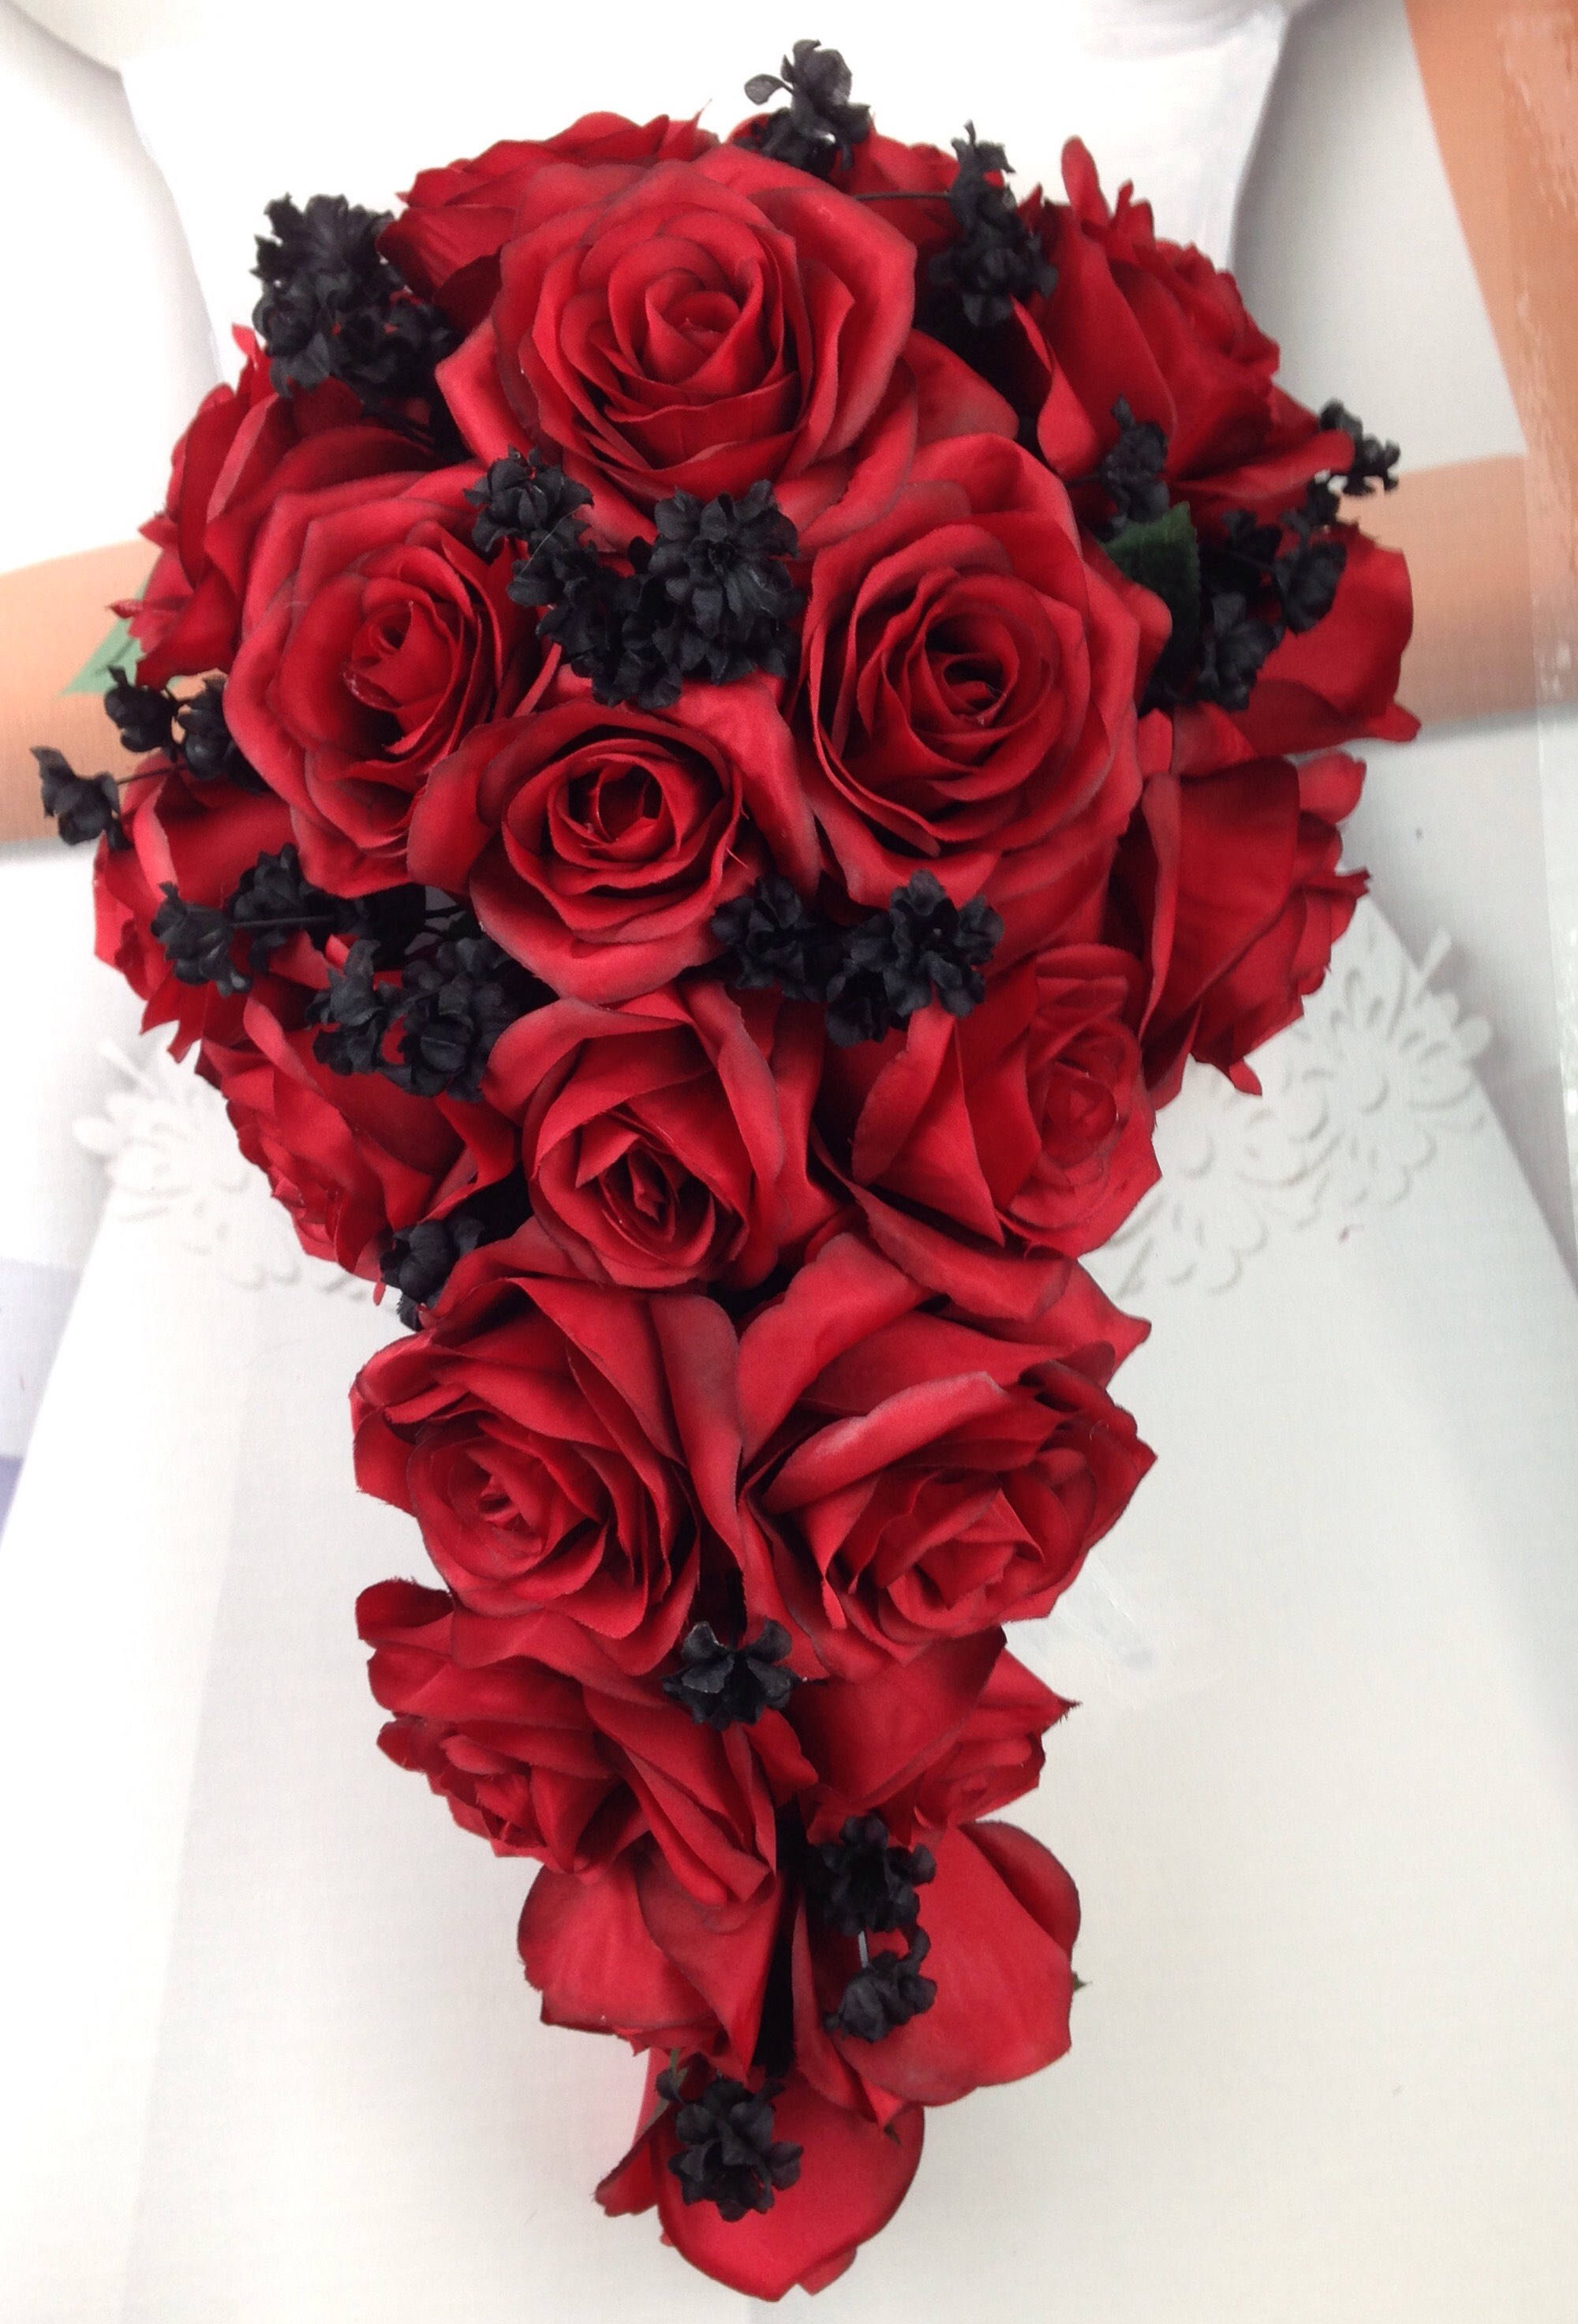 New artificial red and black wedding teardrop bouquet 15 in length new artificial red and black wedding teardrop bouquet 15 in length black babys breath and red bridal bouquet izmirmasajfo